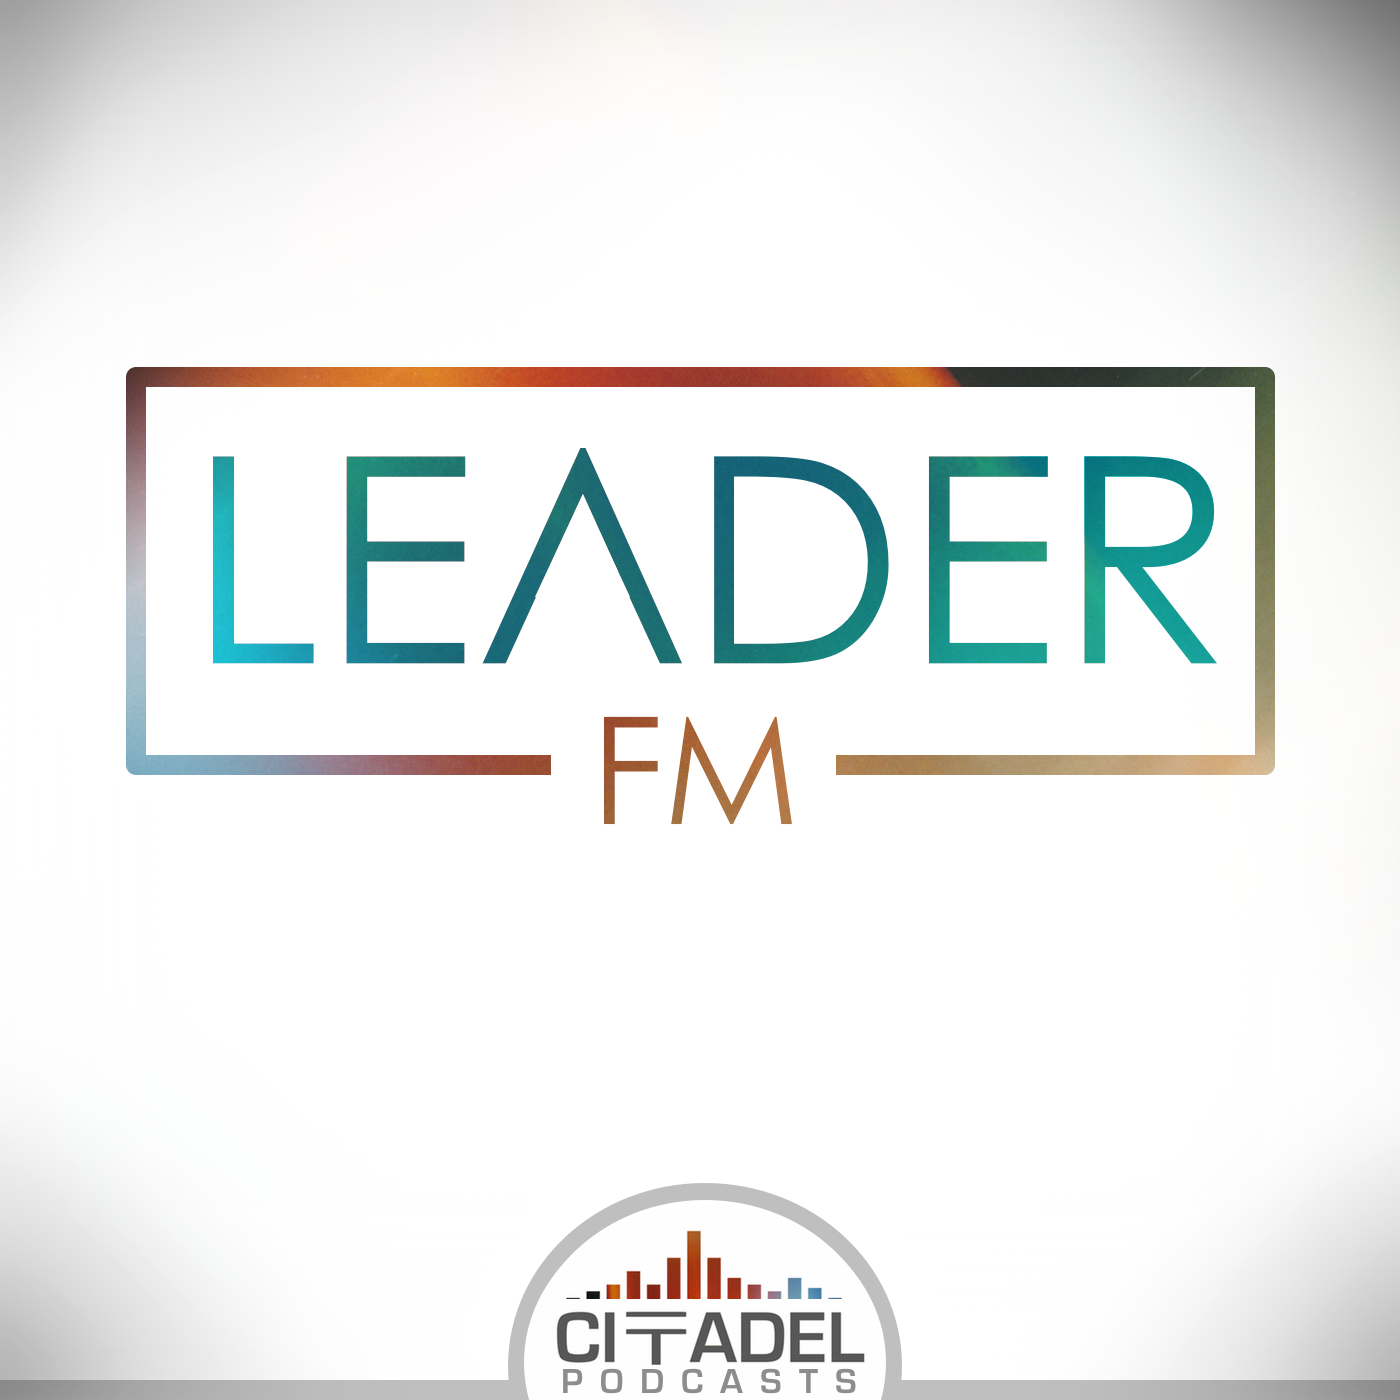 LFM Episode 011: Why Leaders Need To Grasp Meme Theory